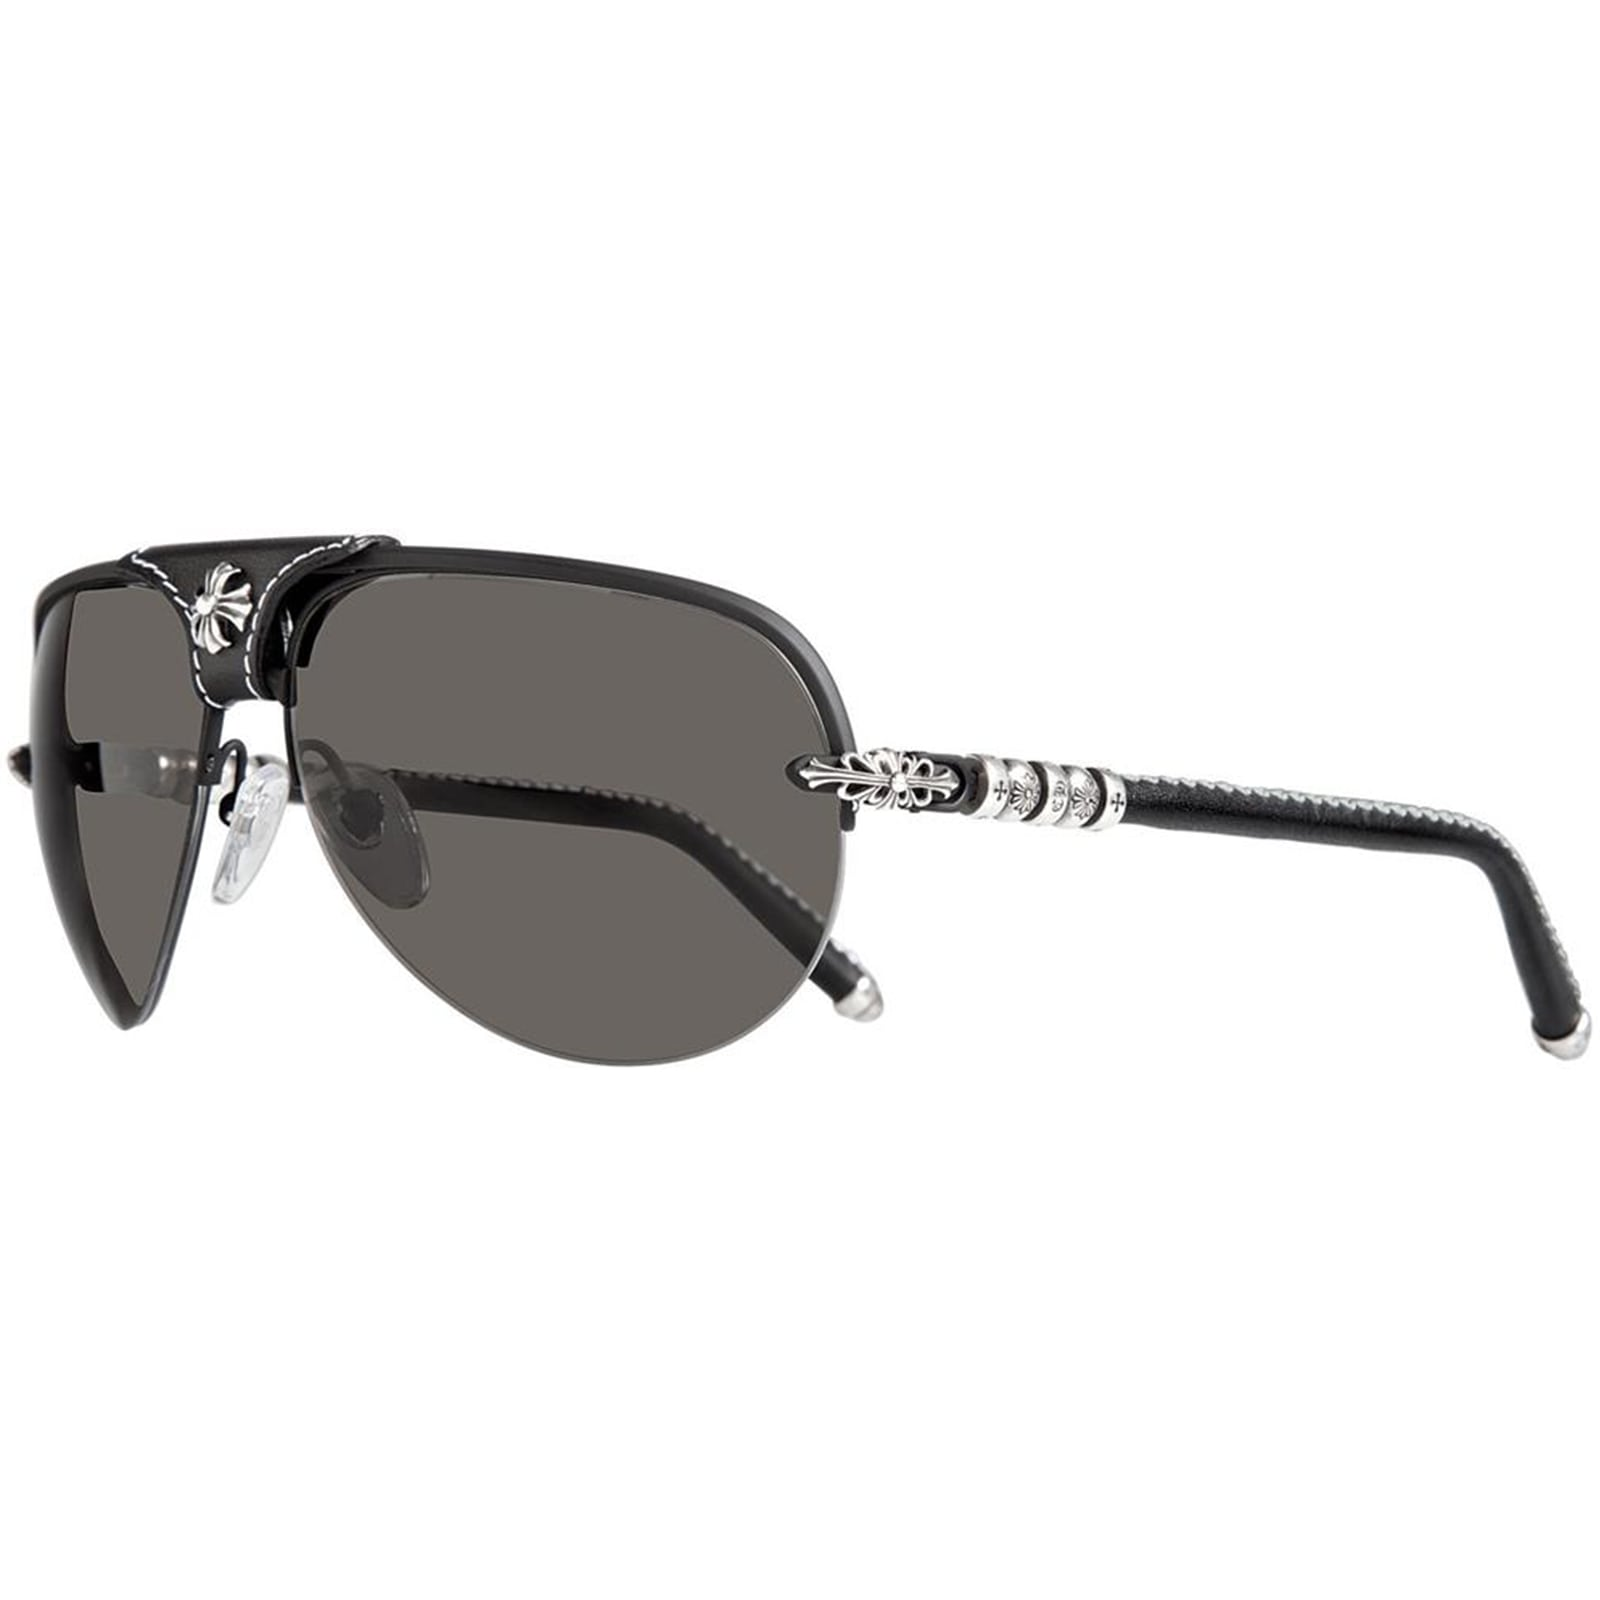 04206bc8eb Original Pieces Made with Exceptional Materials. Chrome Hearts eyewear ...